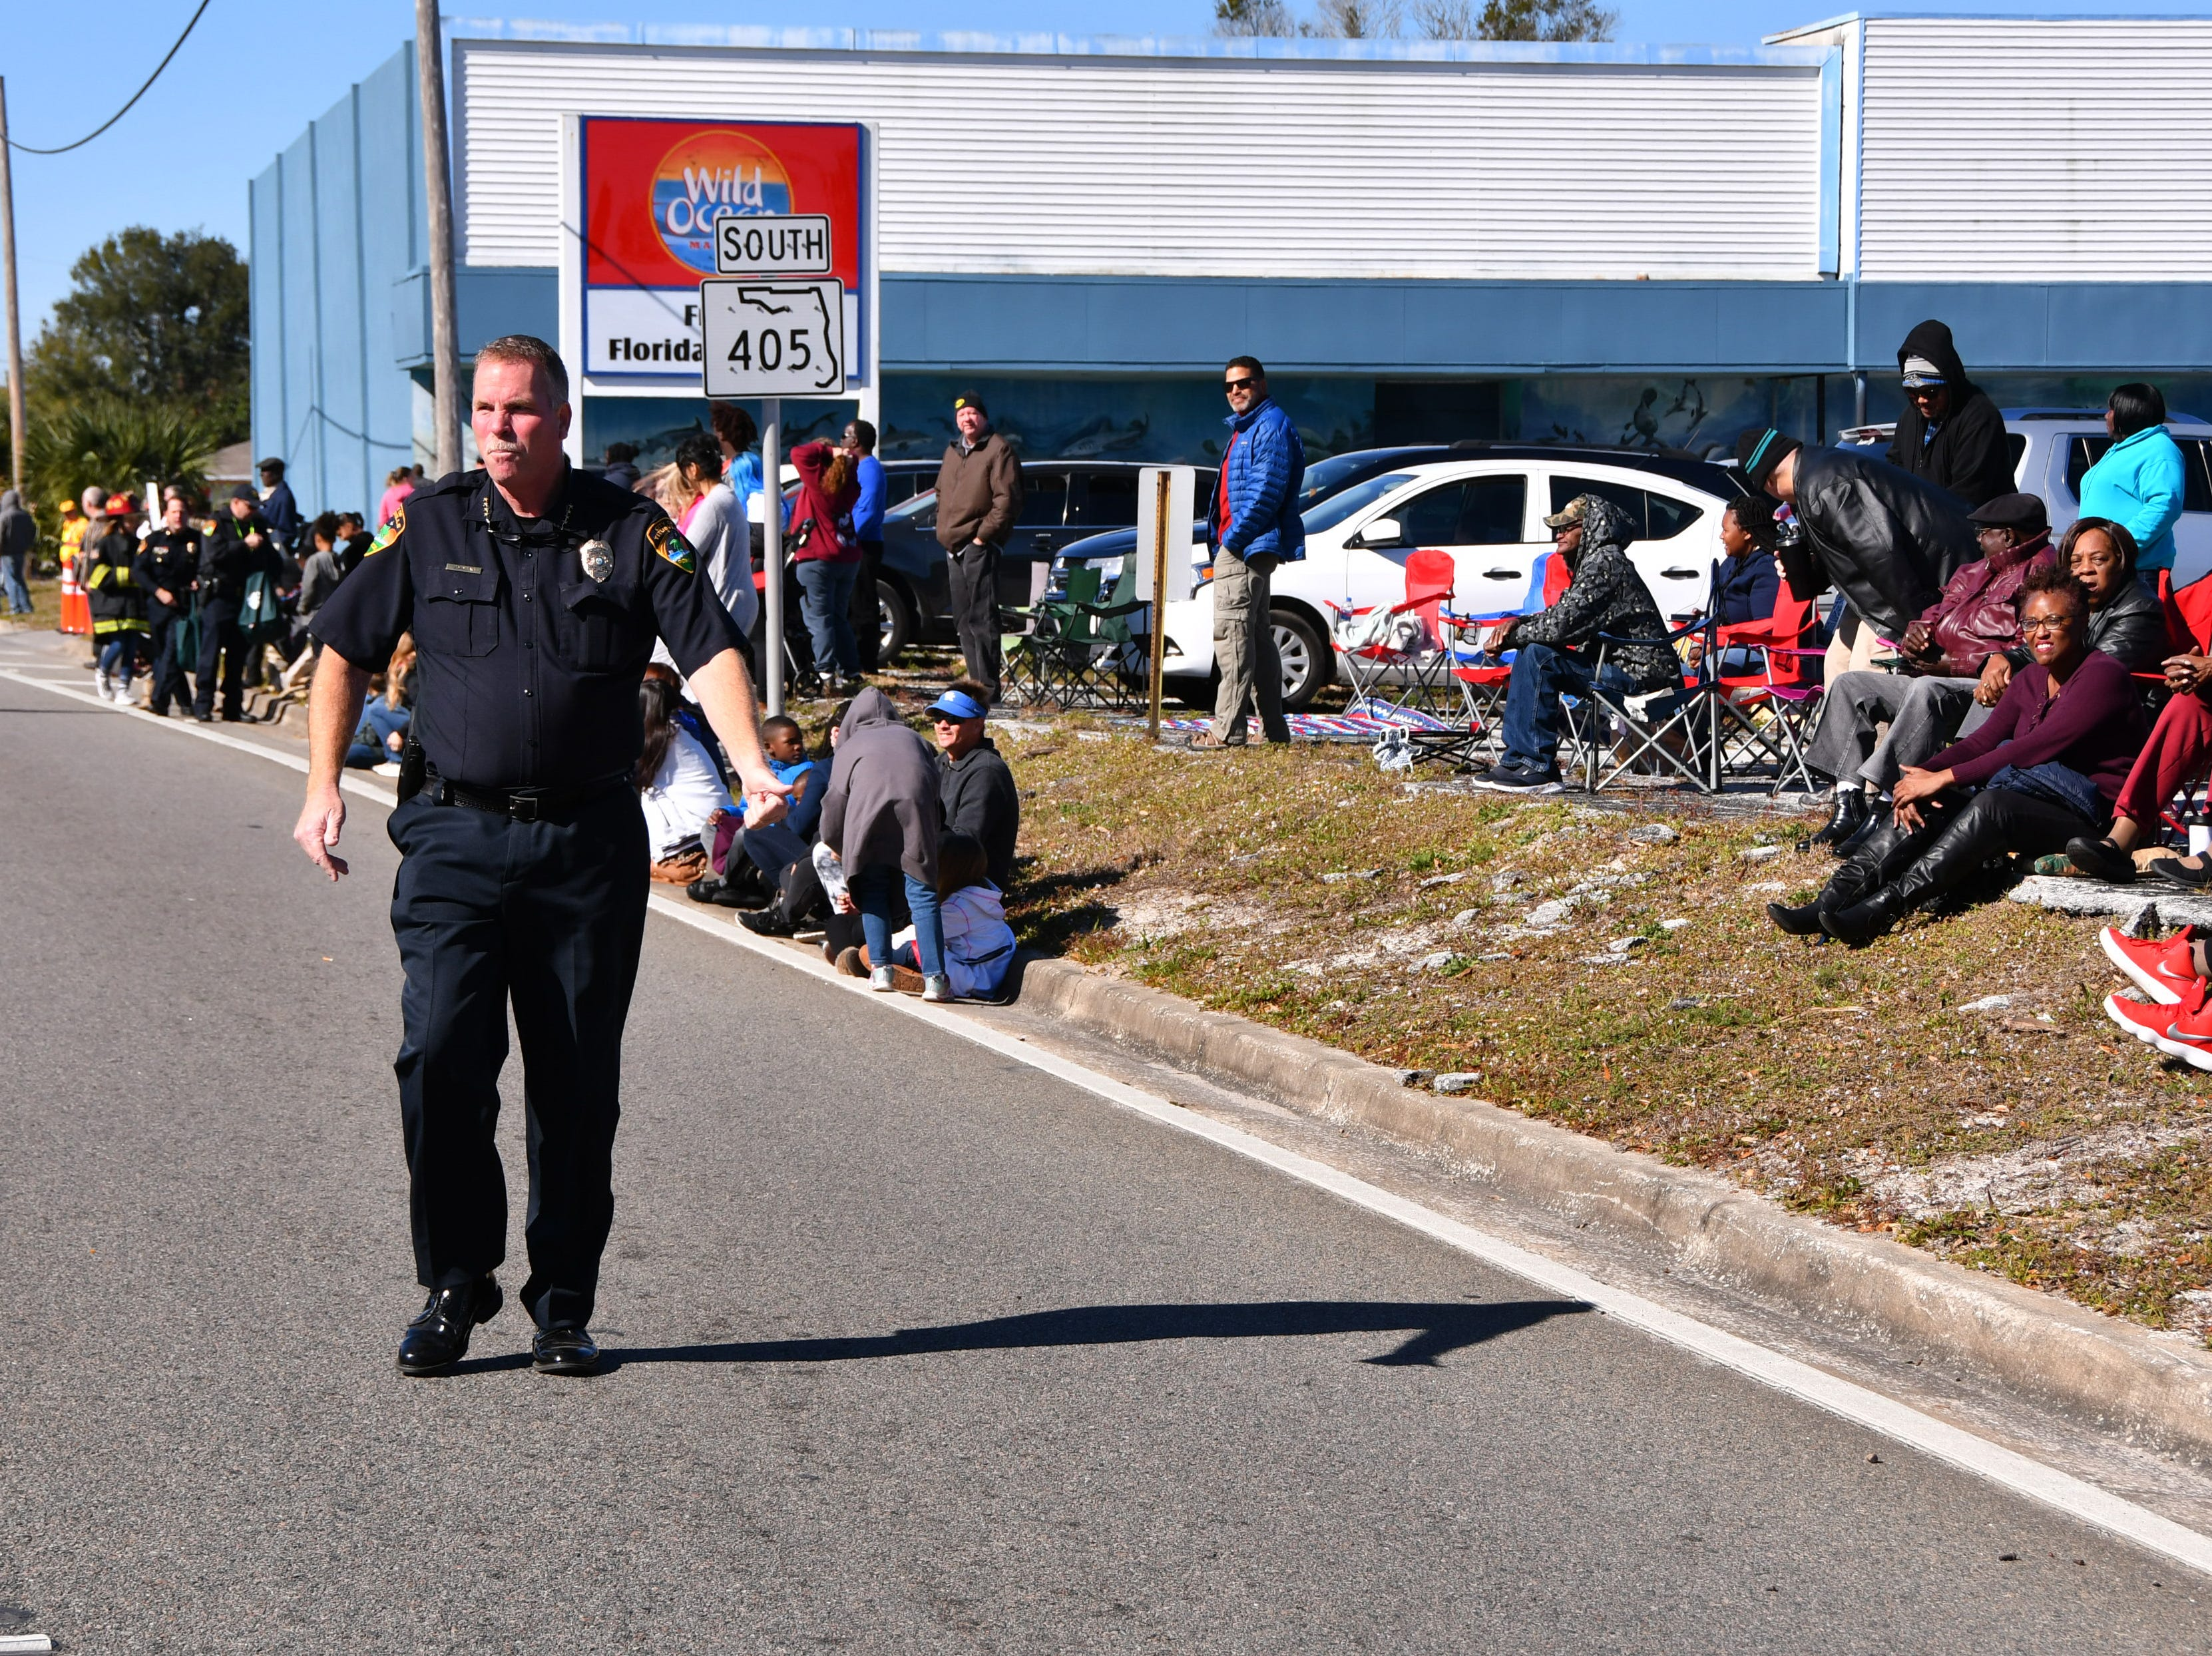 The North Brevard annual Dr. Martin Luther King Jr. Parade came east on South Street in Titusville at 11:00 a.m. , ending at the Heritage Festival with food and music  at Campbell Park in Titusville. Police Chief John Lau walked the parade greeting everyone as he went.